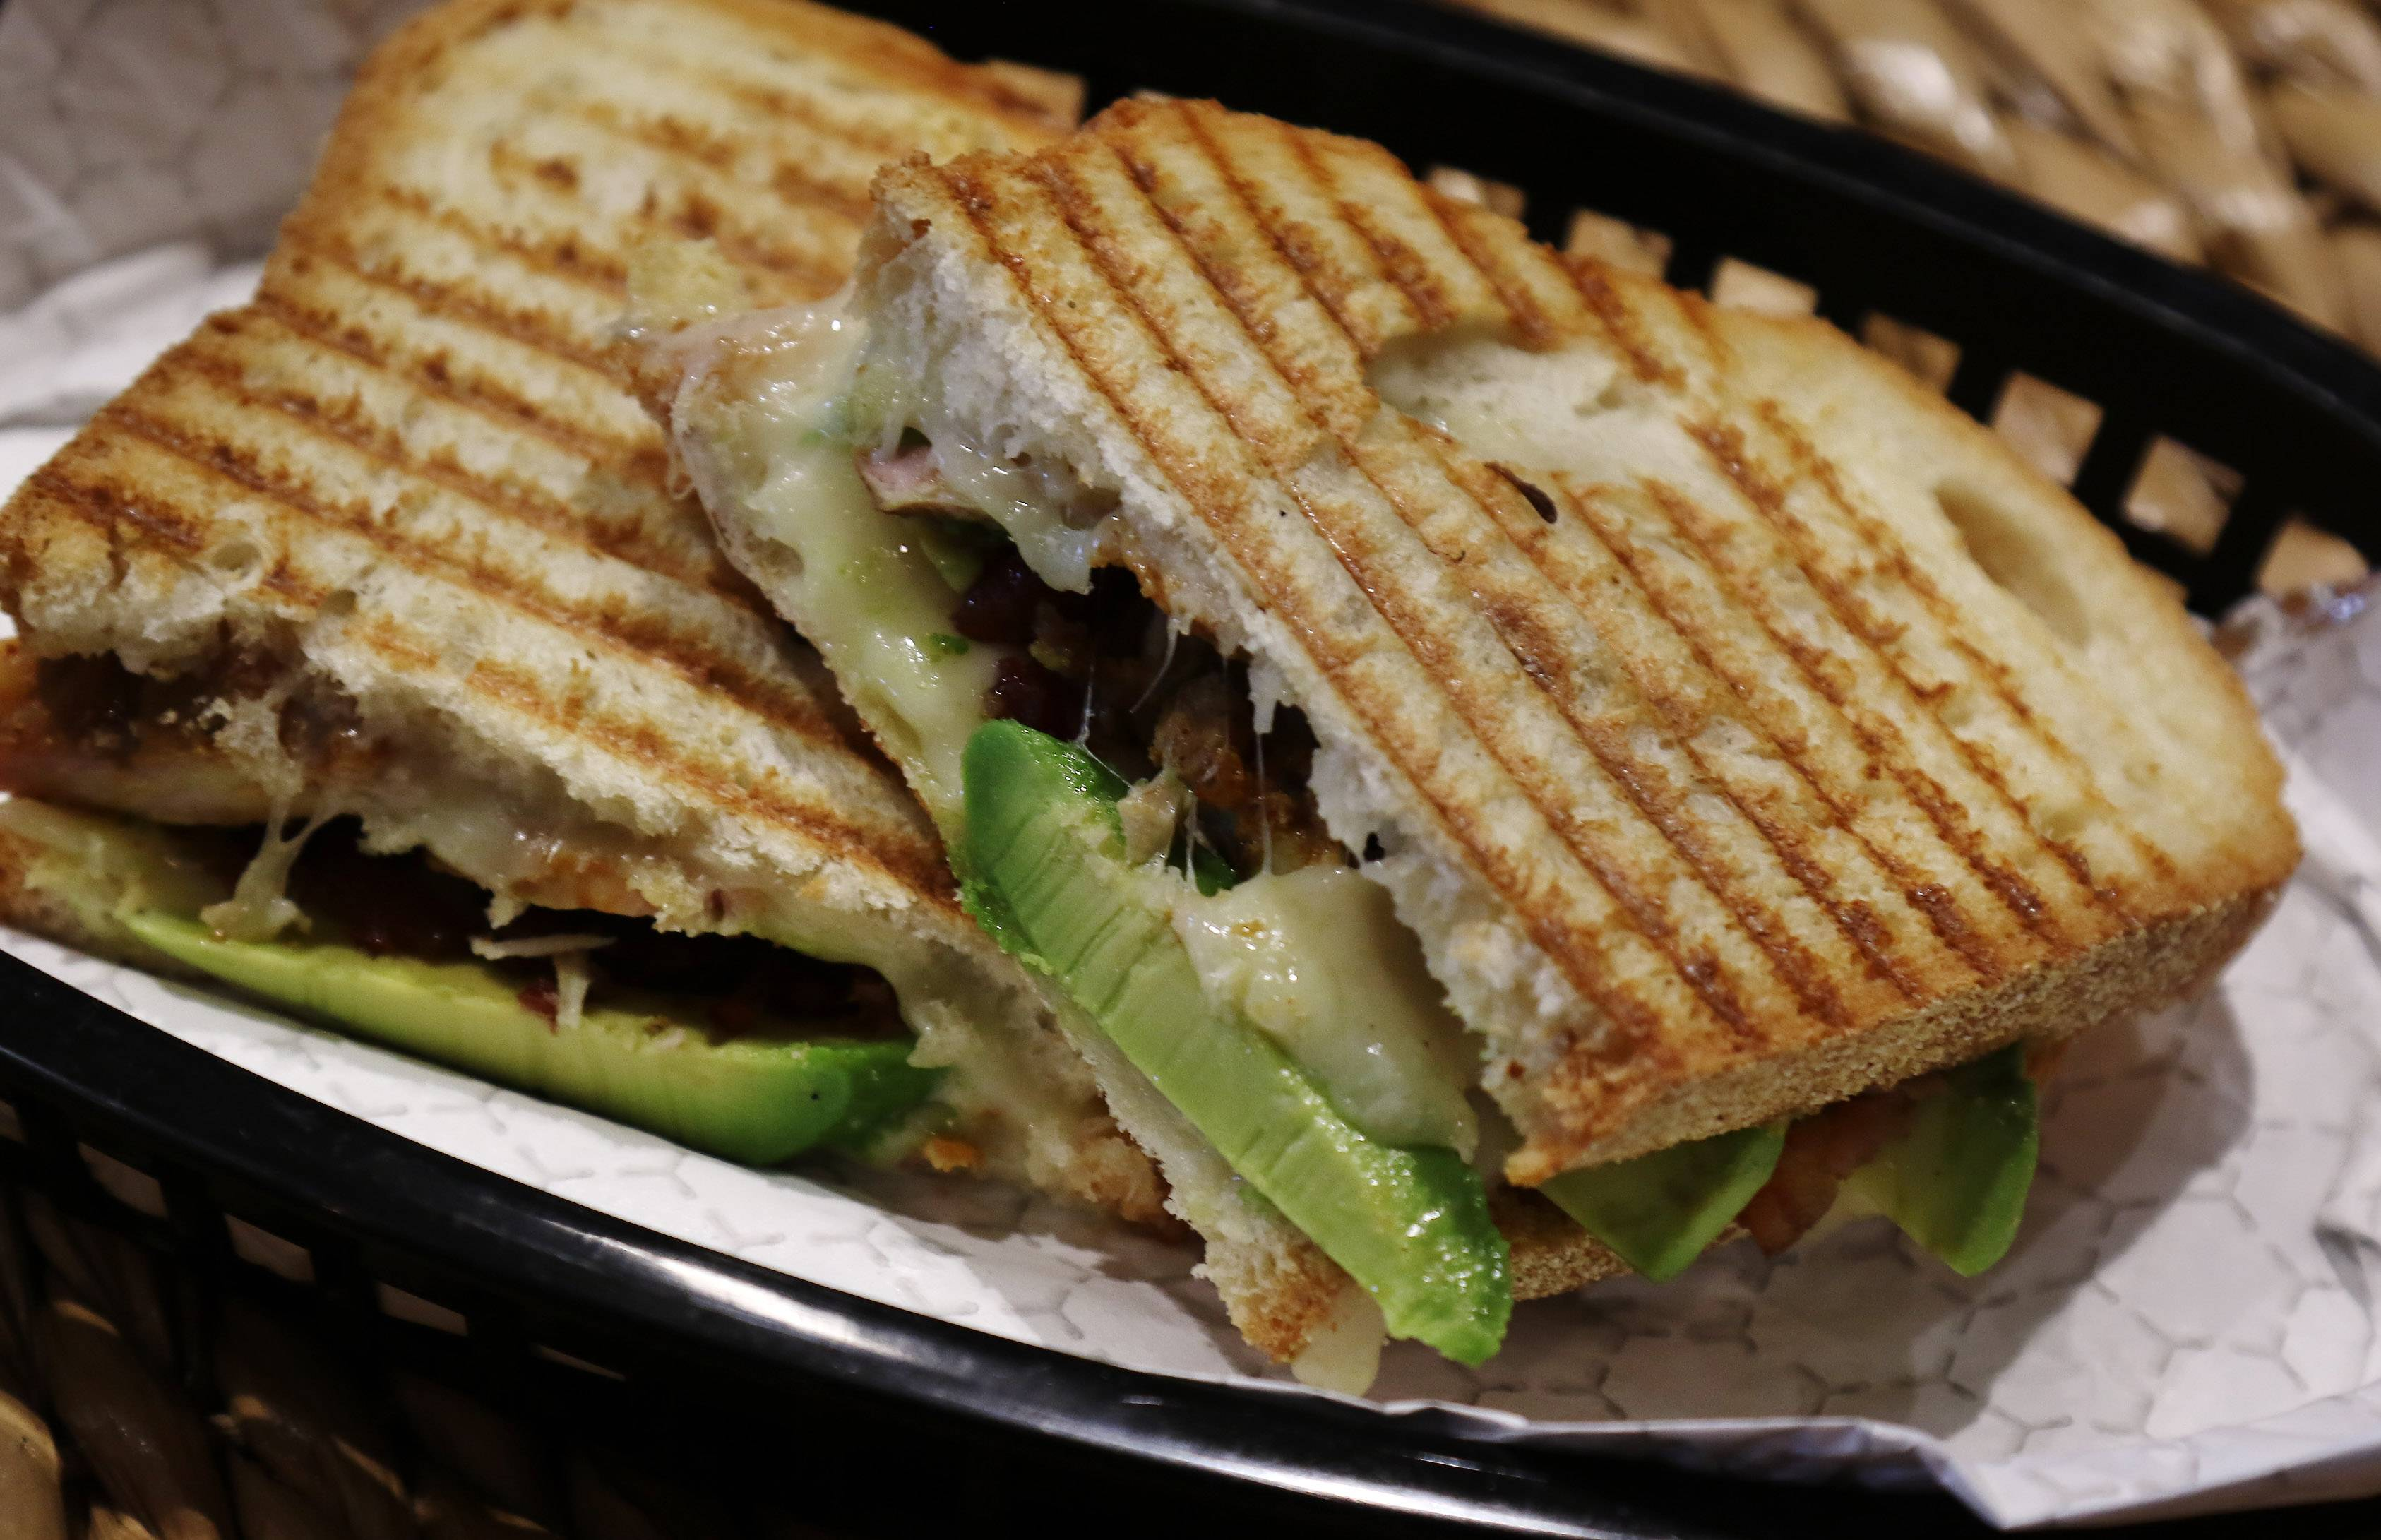 Chicken and avocado sandwich is among the menu items at the recently opened Eating Hub in Mundelein.